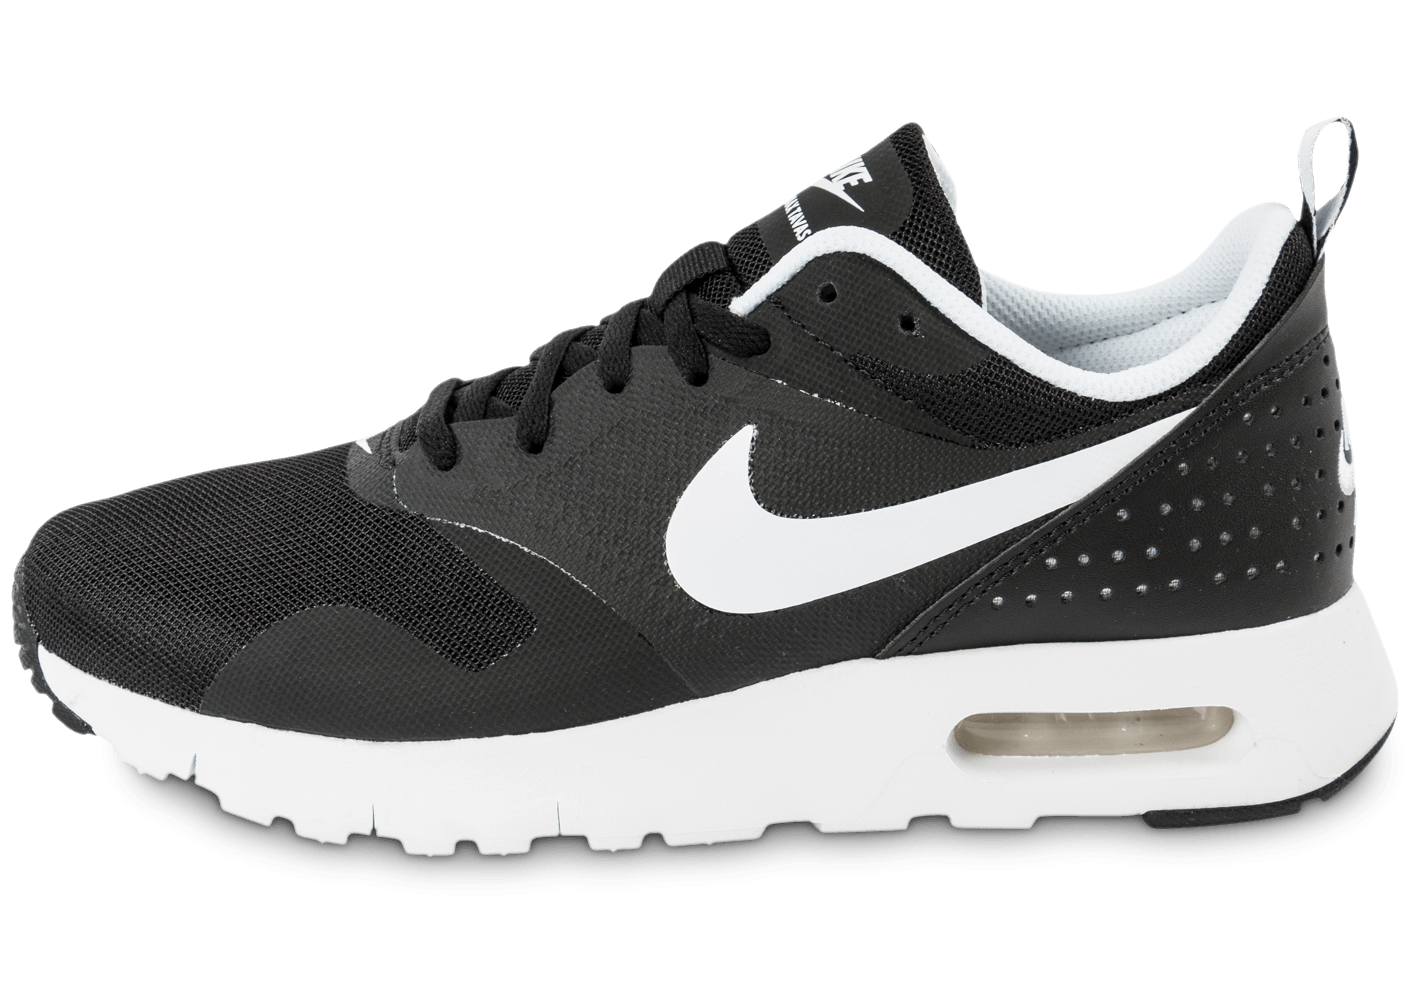 air max bw chausport,chaussures nike air max bw anthracite